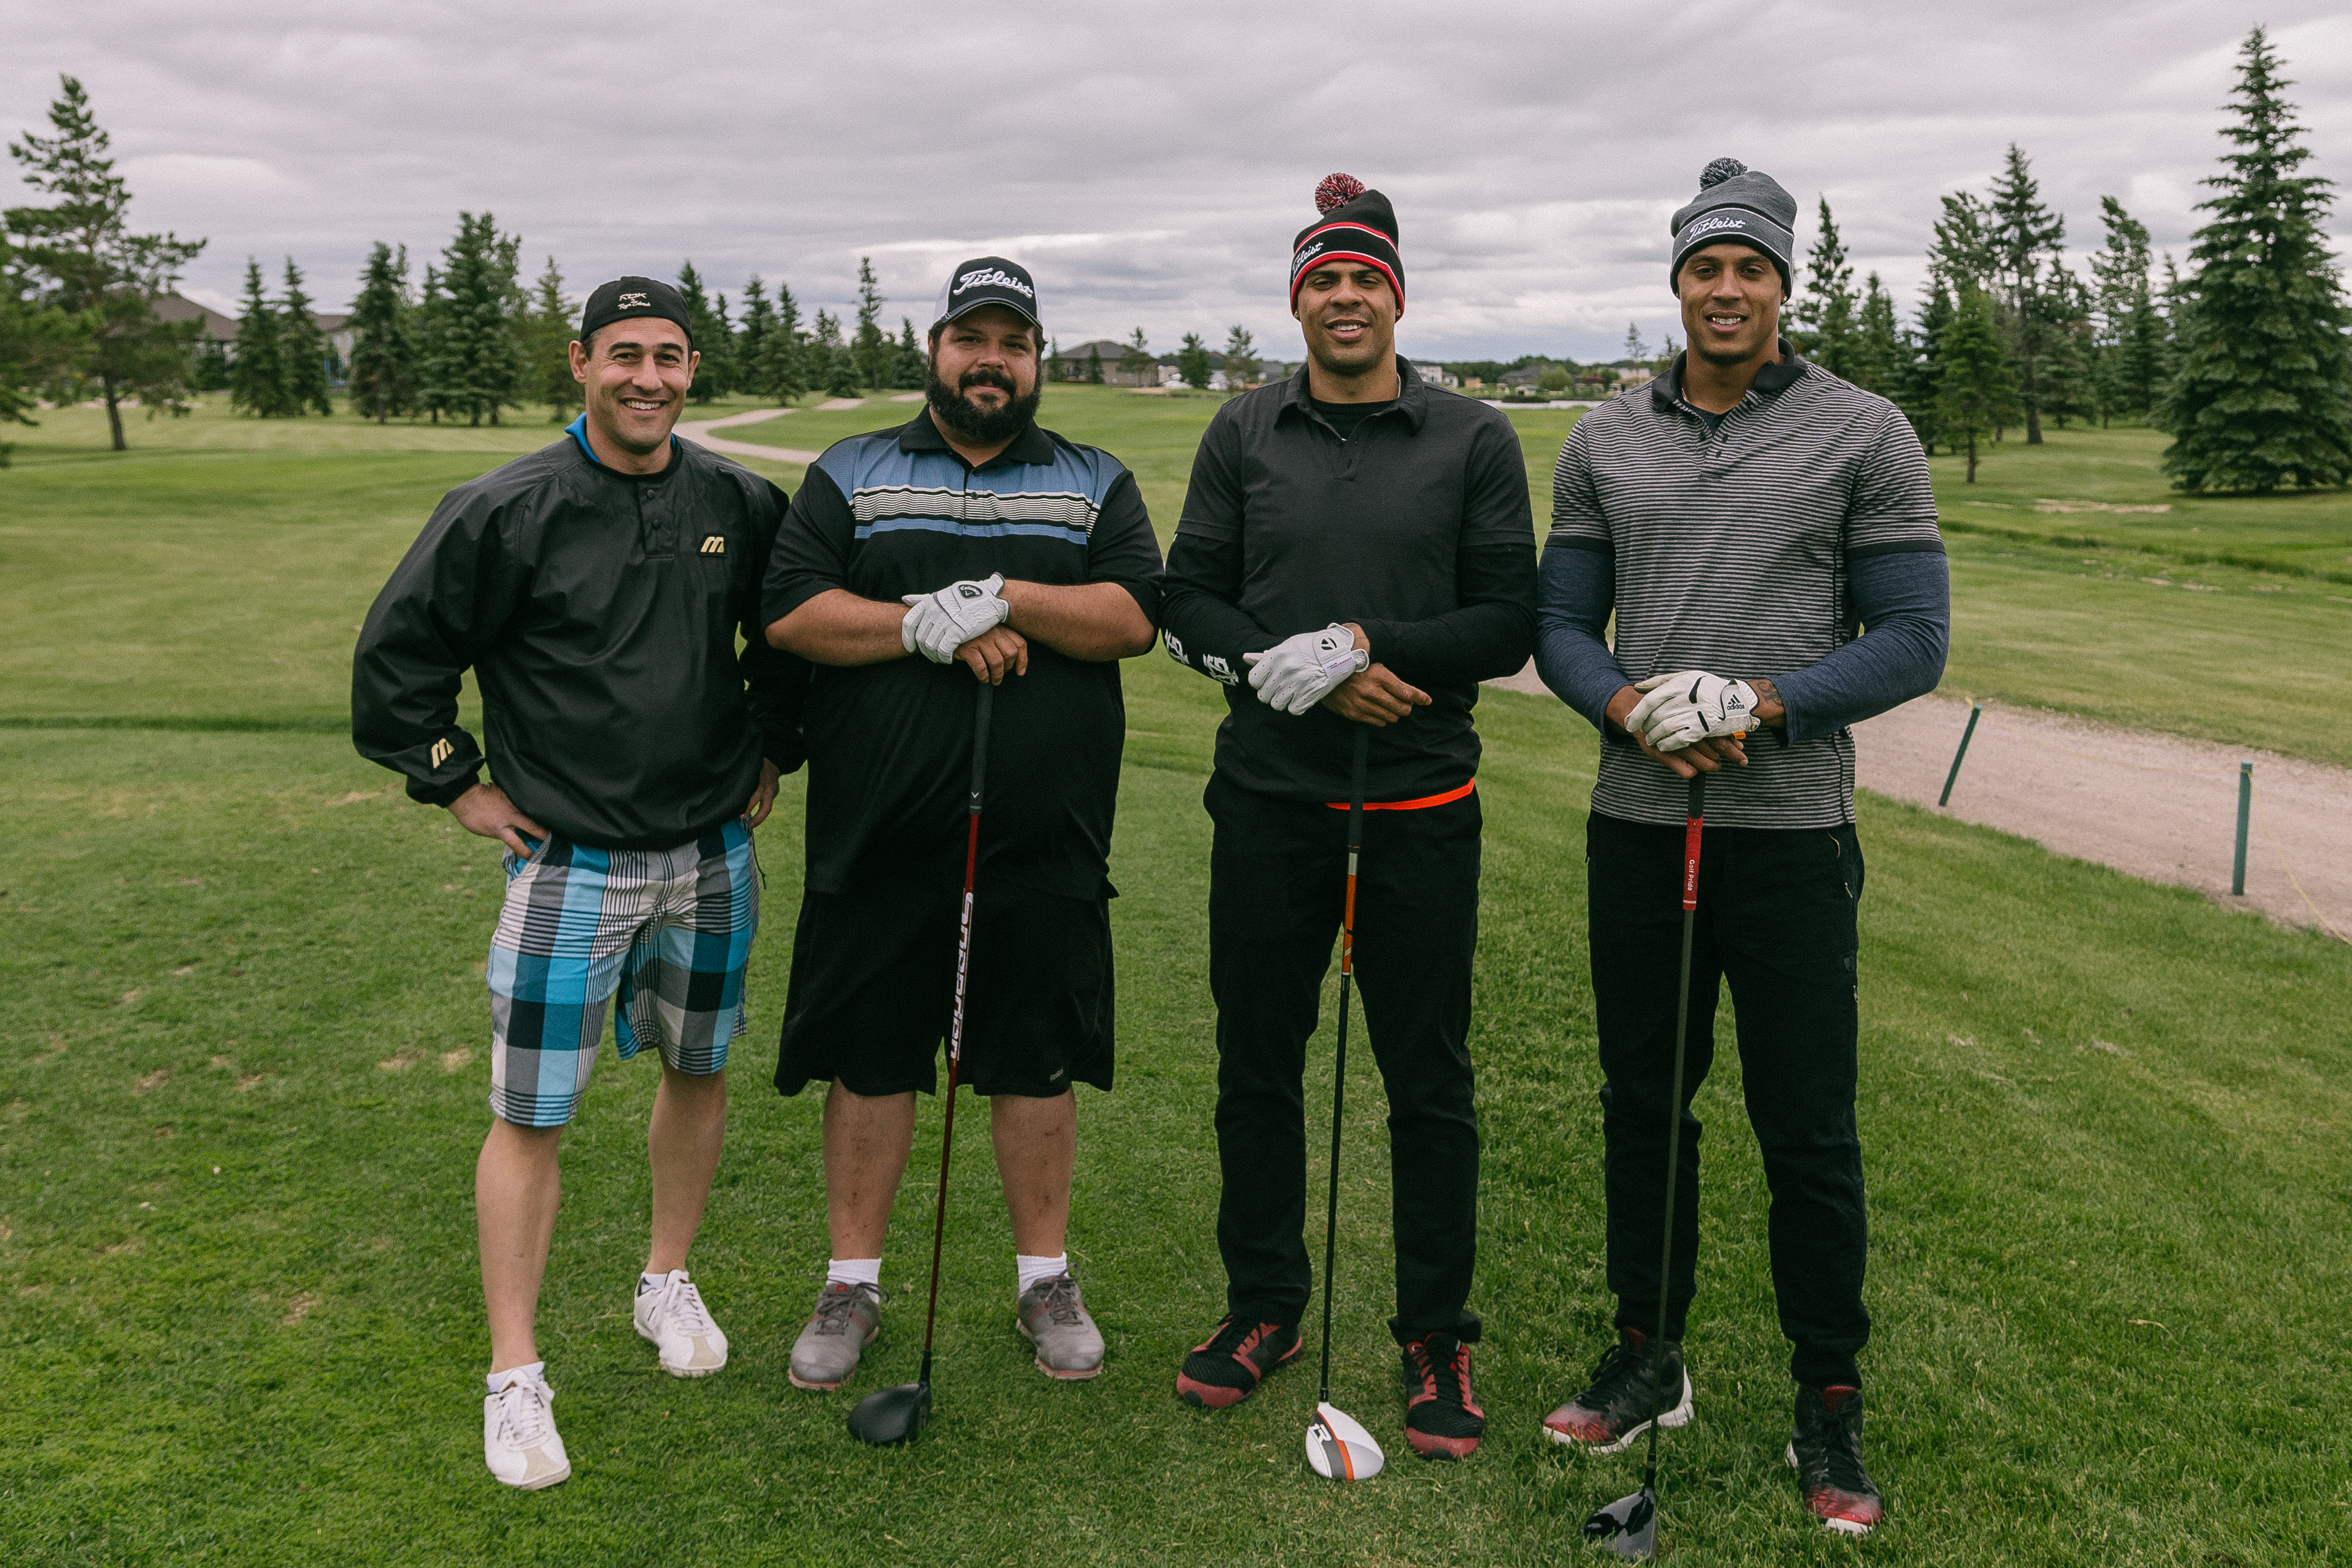 The 5th Annual Peter Scouras Memorial Golf Classic presented by ALLIED PAYMENTS gallery image #9